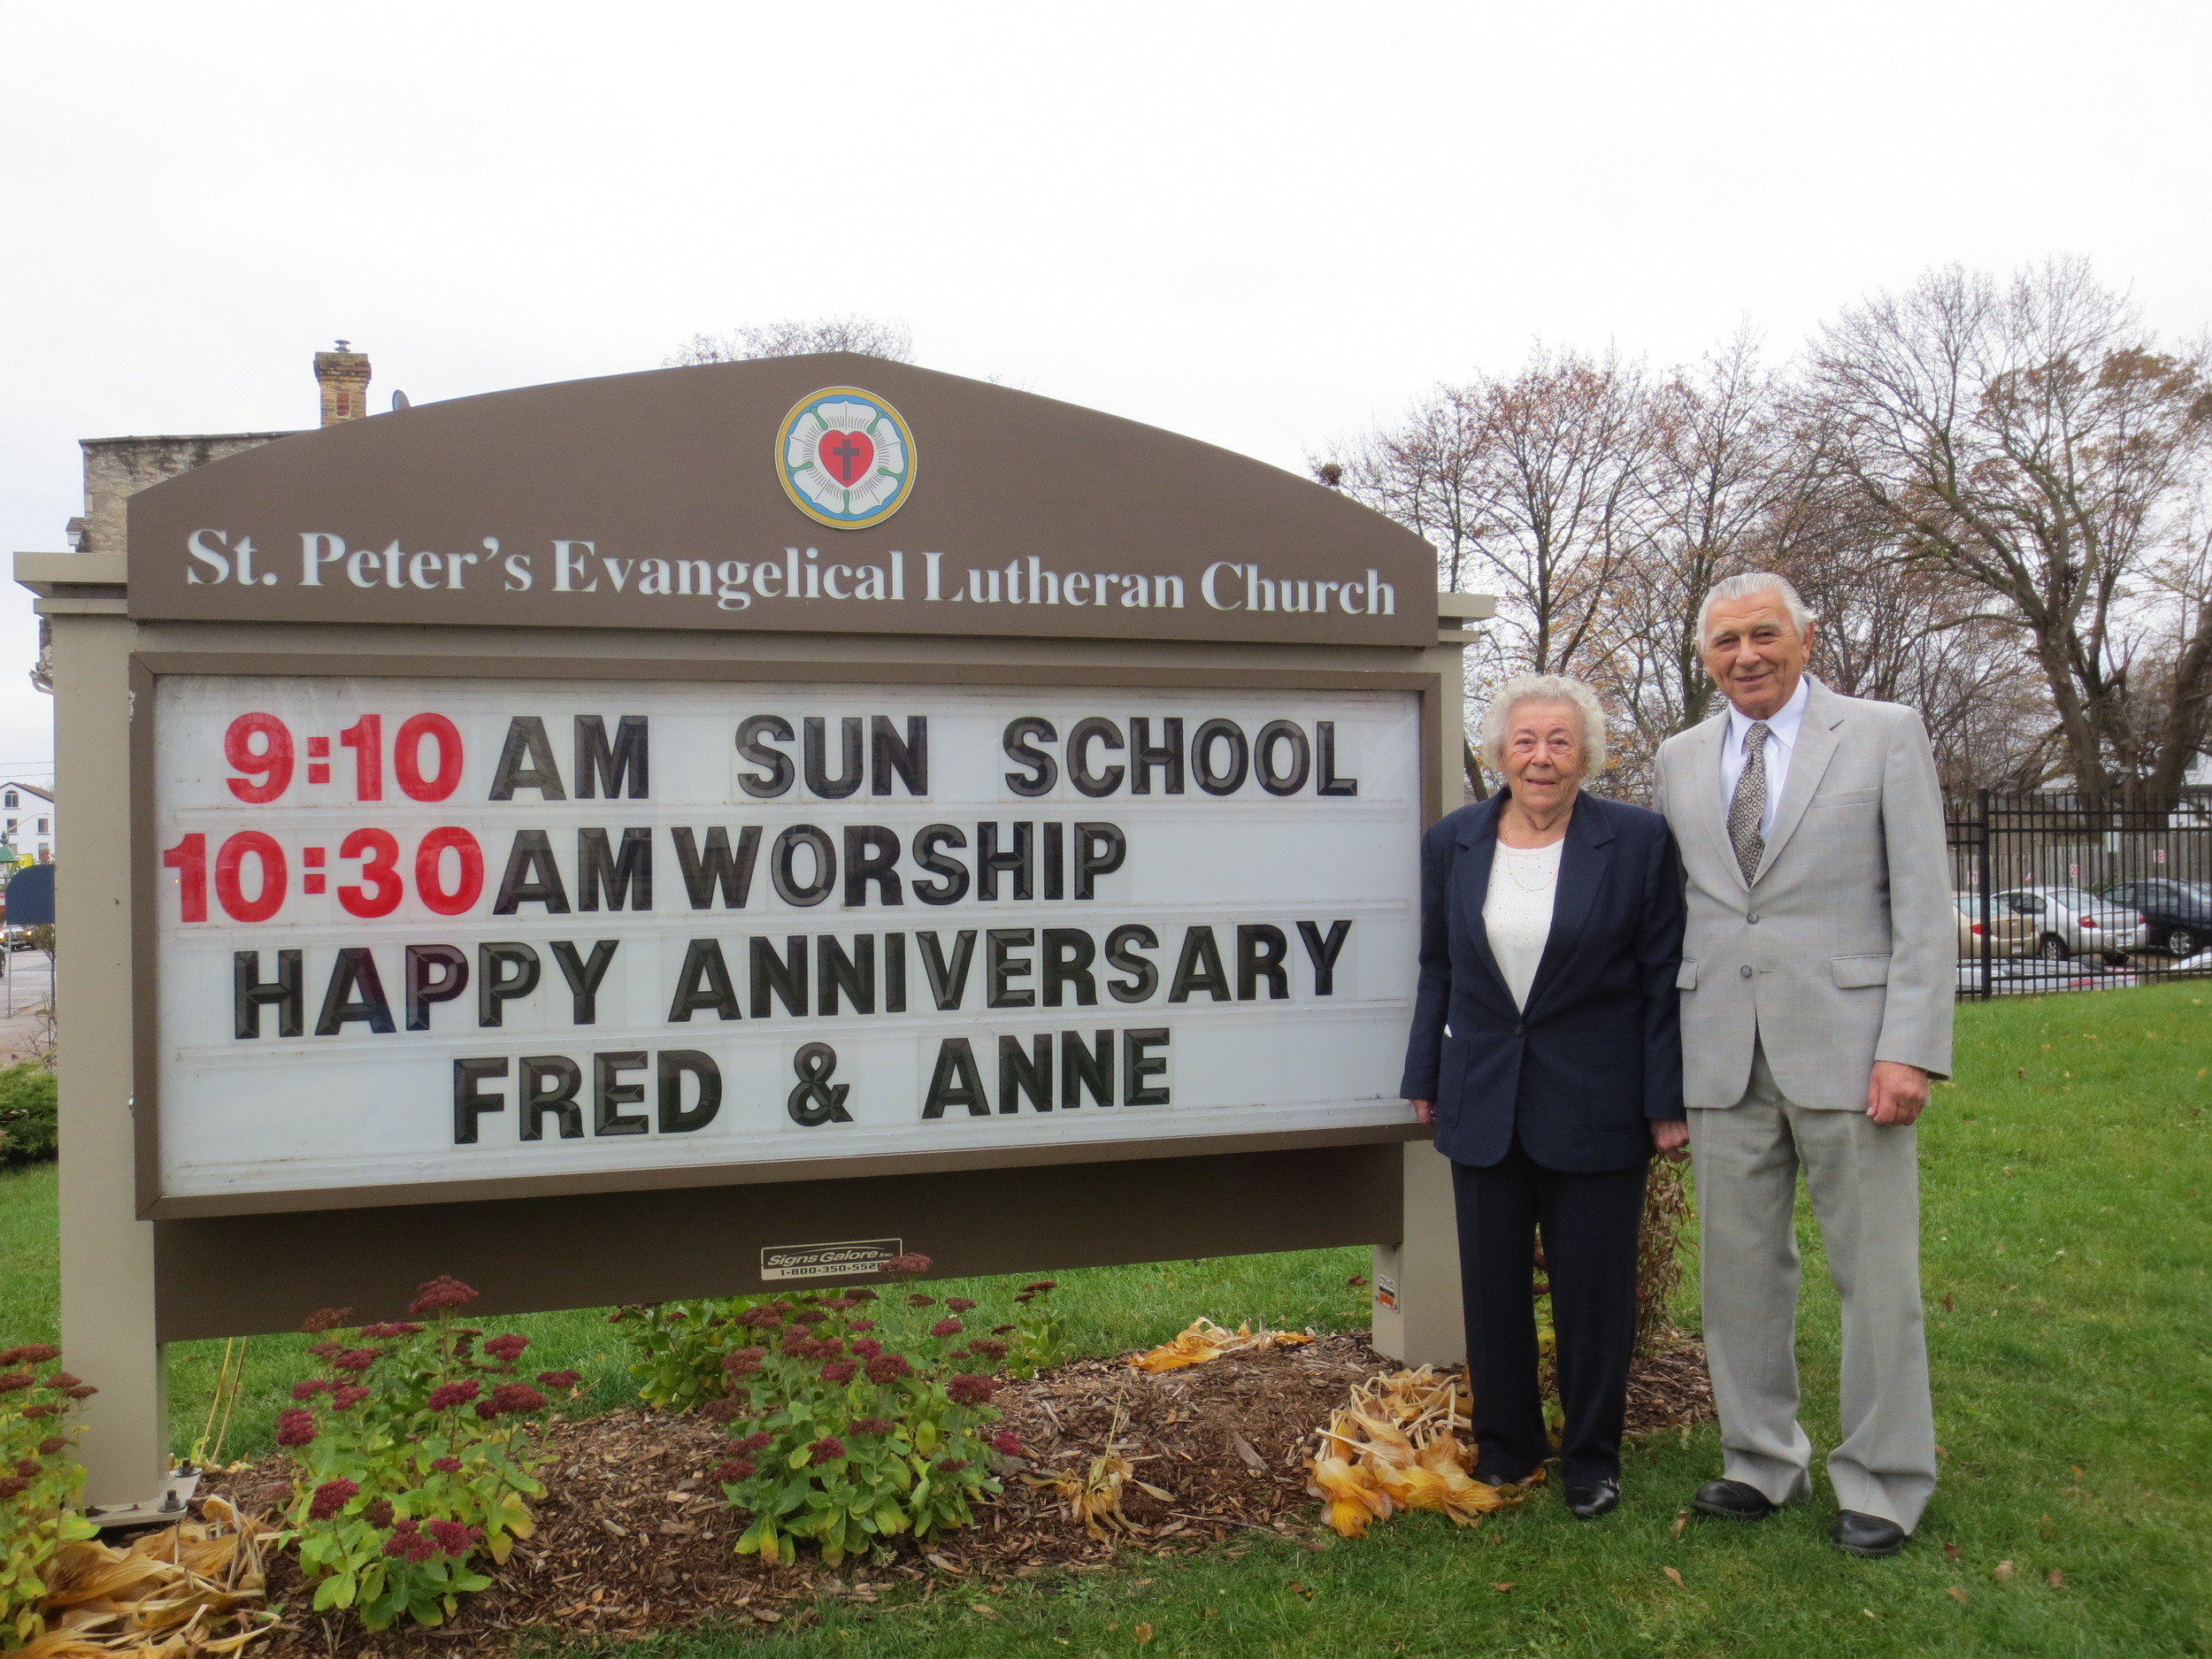 Congratulations and best wishes to Anne & Fred Hoot on the celebration of their 62nd wedding anniversary. Anne & Fred were married November 17th 1951. god bless you both!